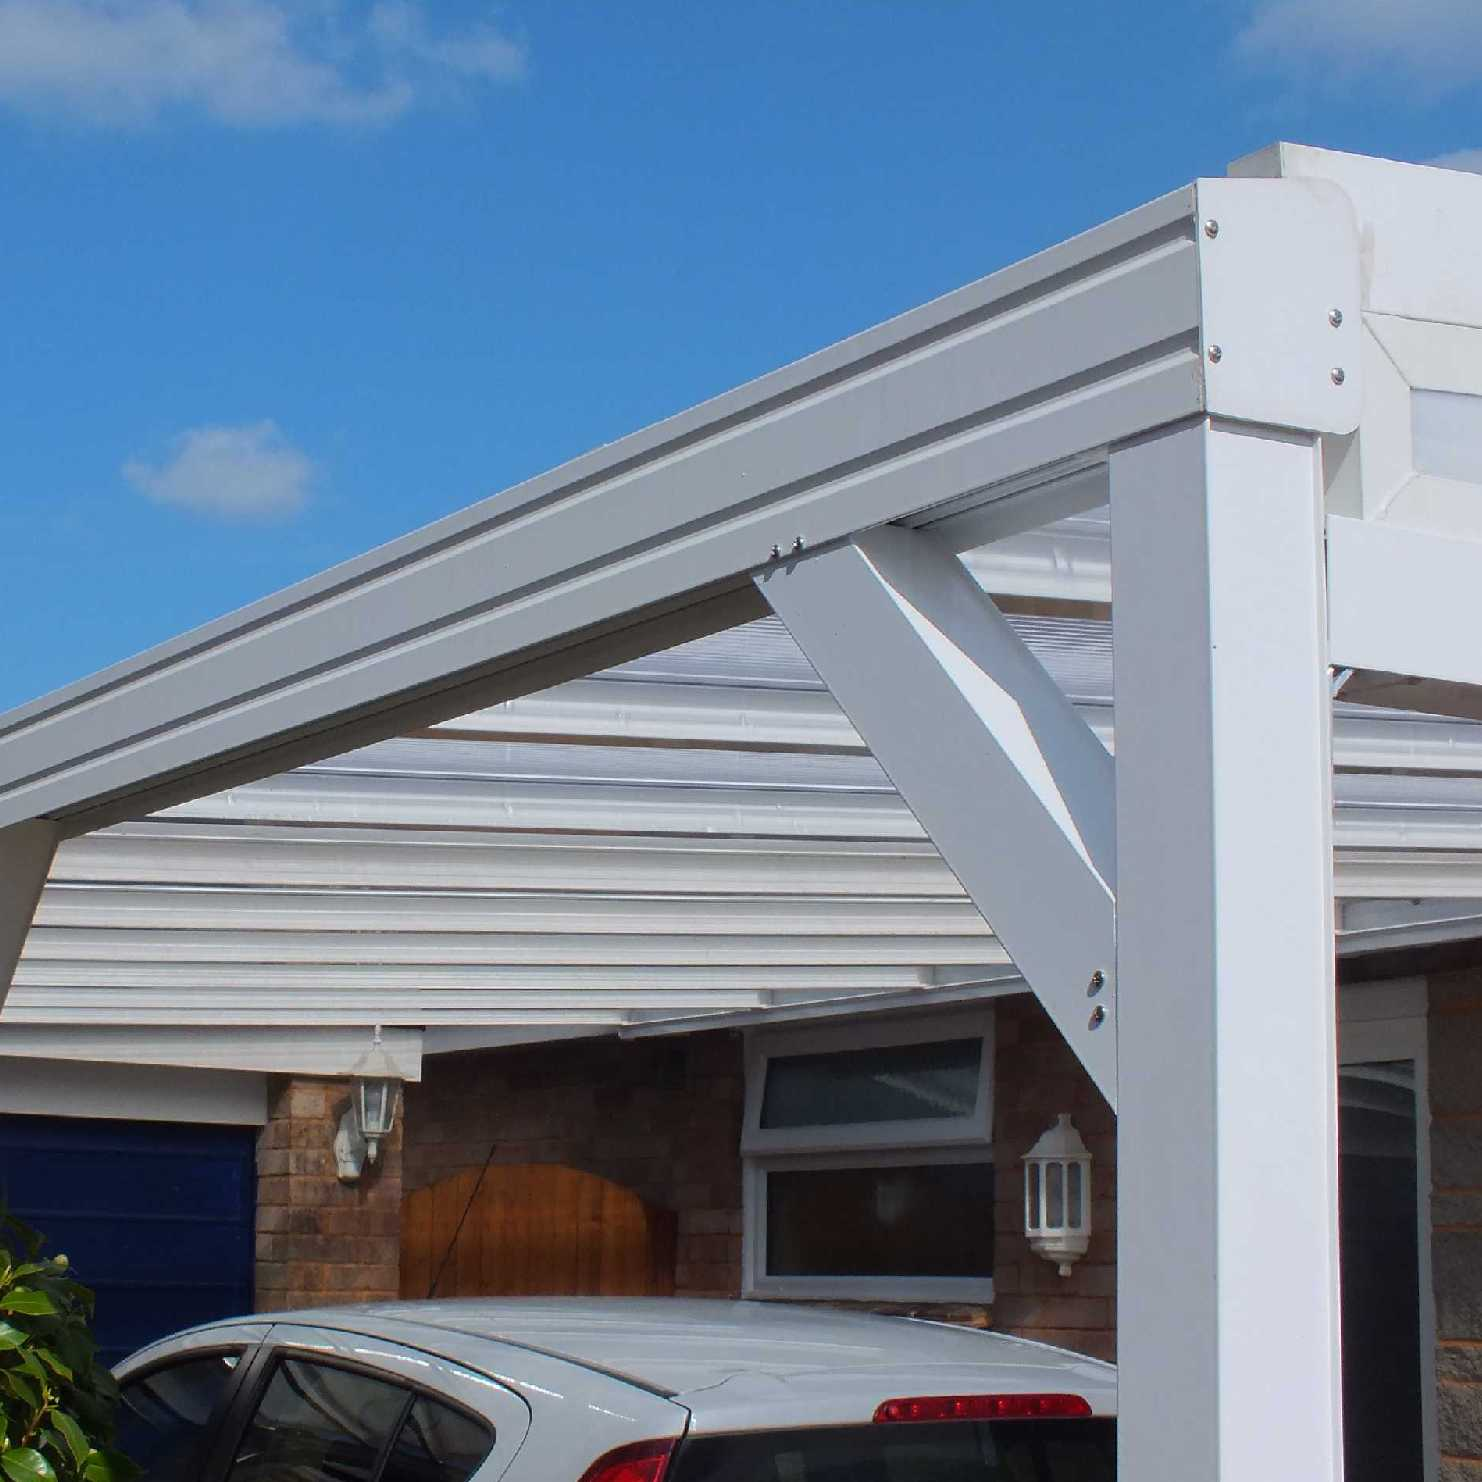 Great deals on Omega Smart Lean-To Canopy with 16mm Polycarbonate Glazing - 4.2m (W) x 3.0m (P), (3) Supporting Posts